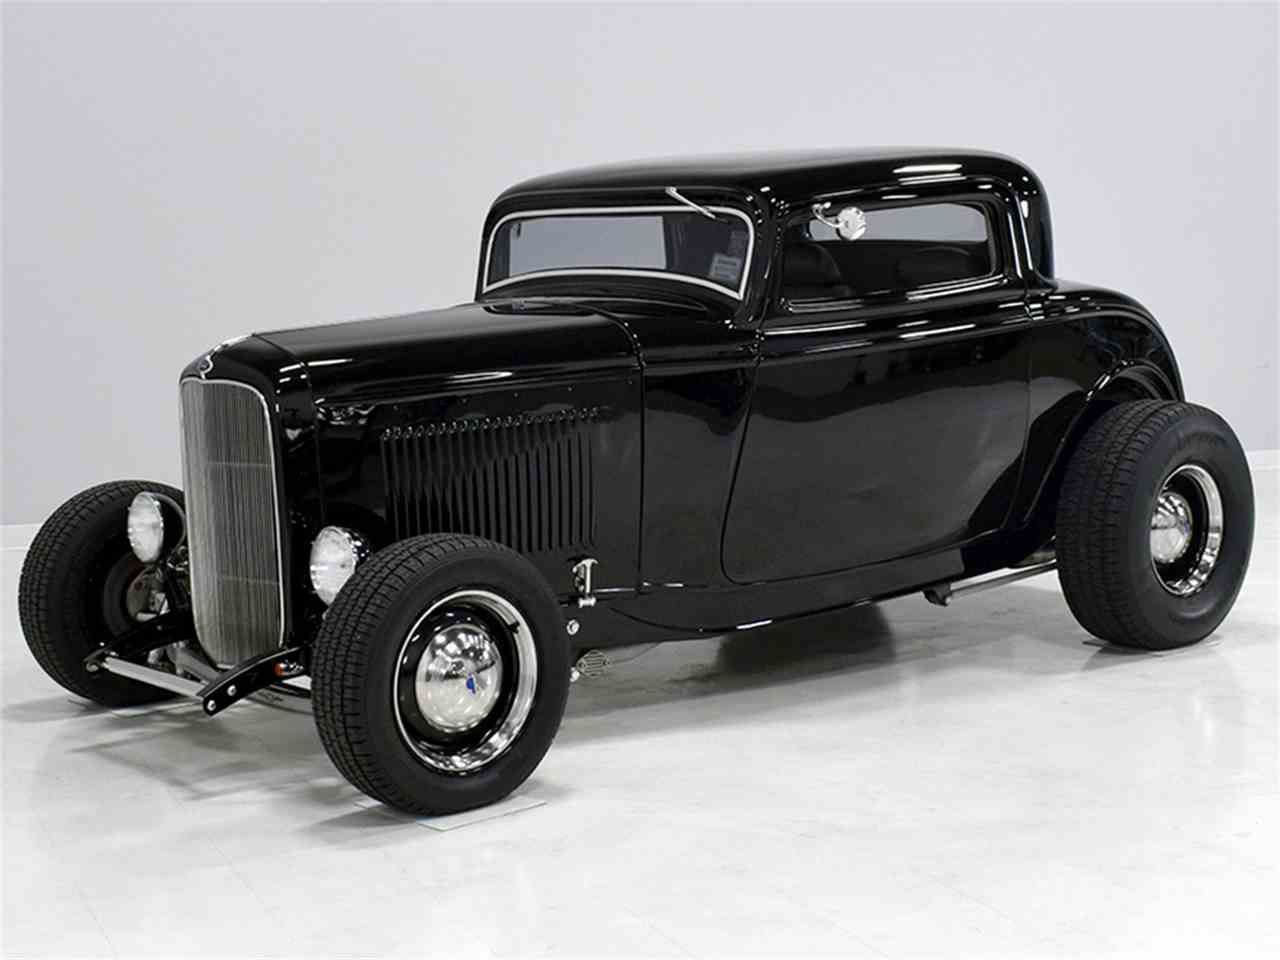 1932 3-Window Coupe for sale | Listing ID: CC-1040393 | ClassicCars ...